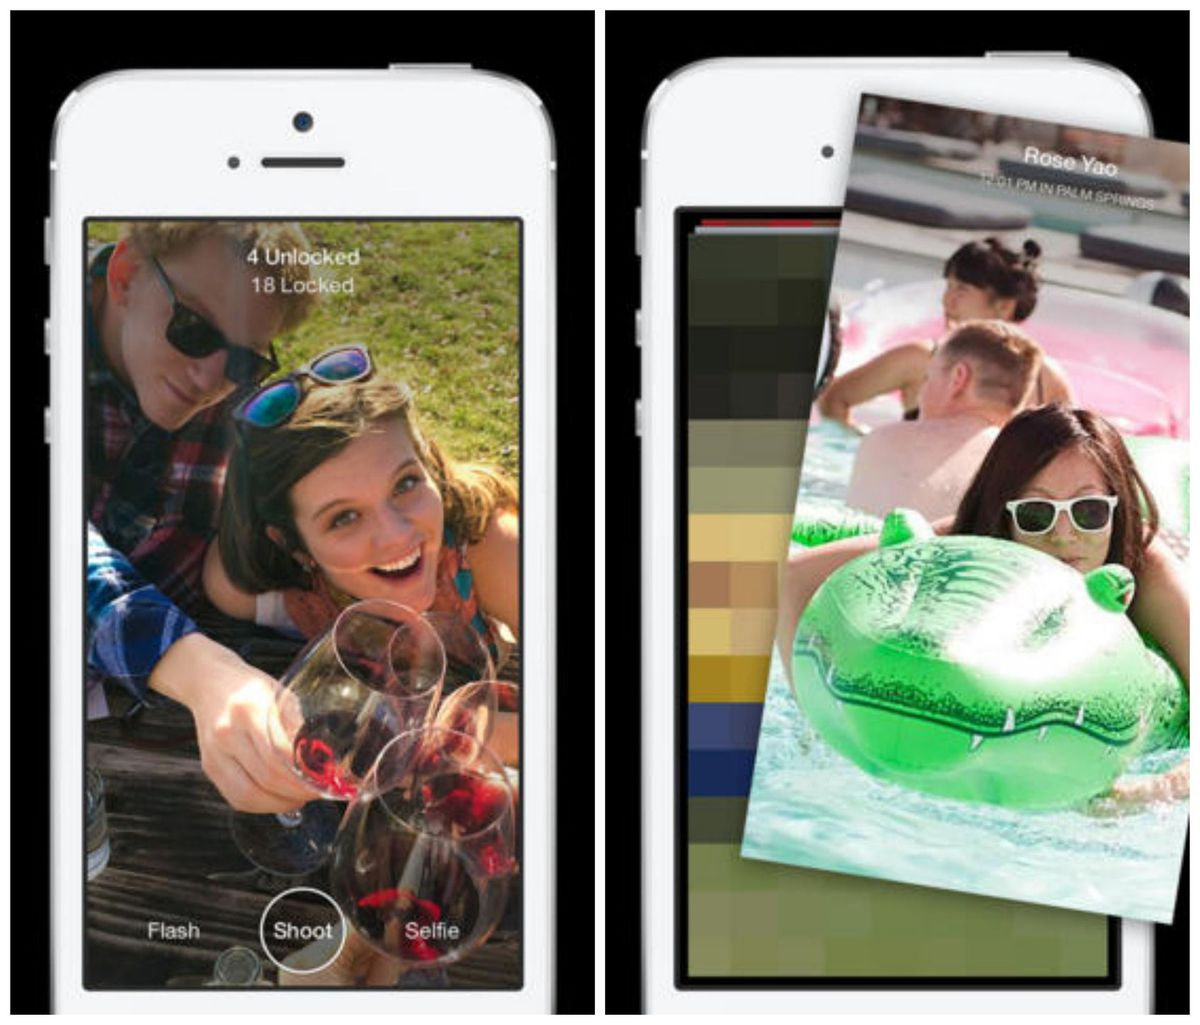 Facebook unveiled a new app Slingshot, which features ephemeral messages similar to Snapchat.